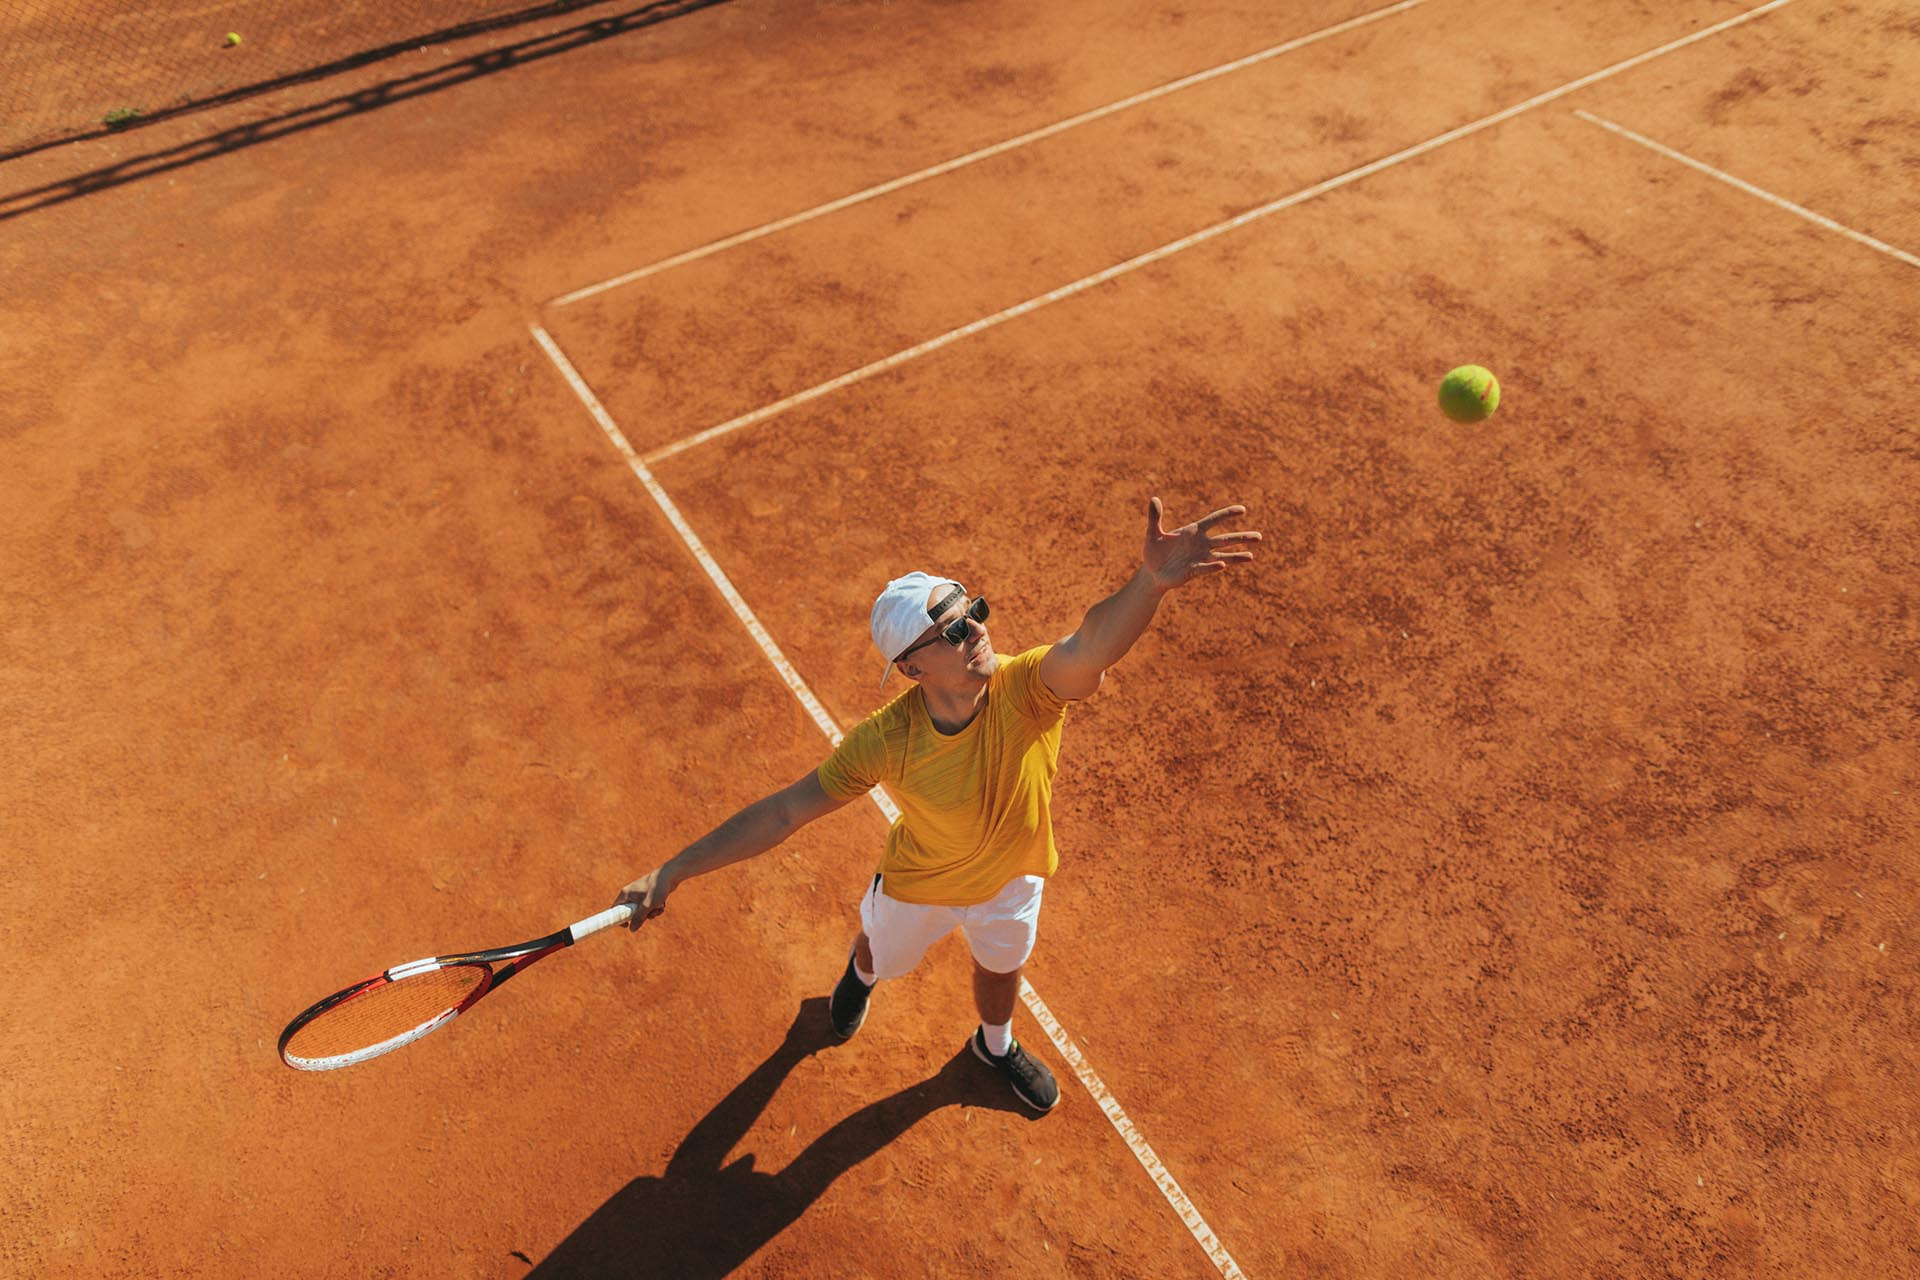 Tennis player on a tennis court during the match